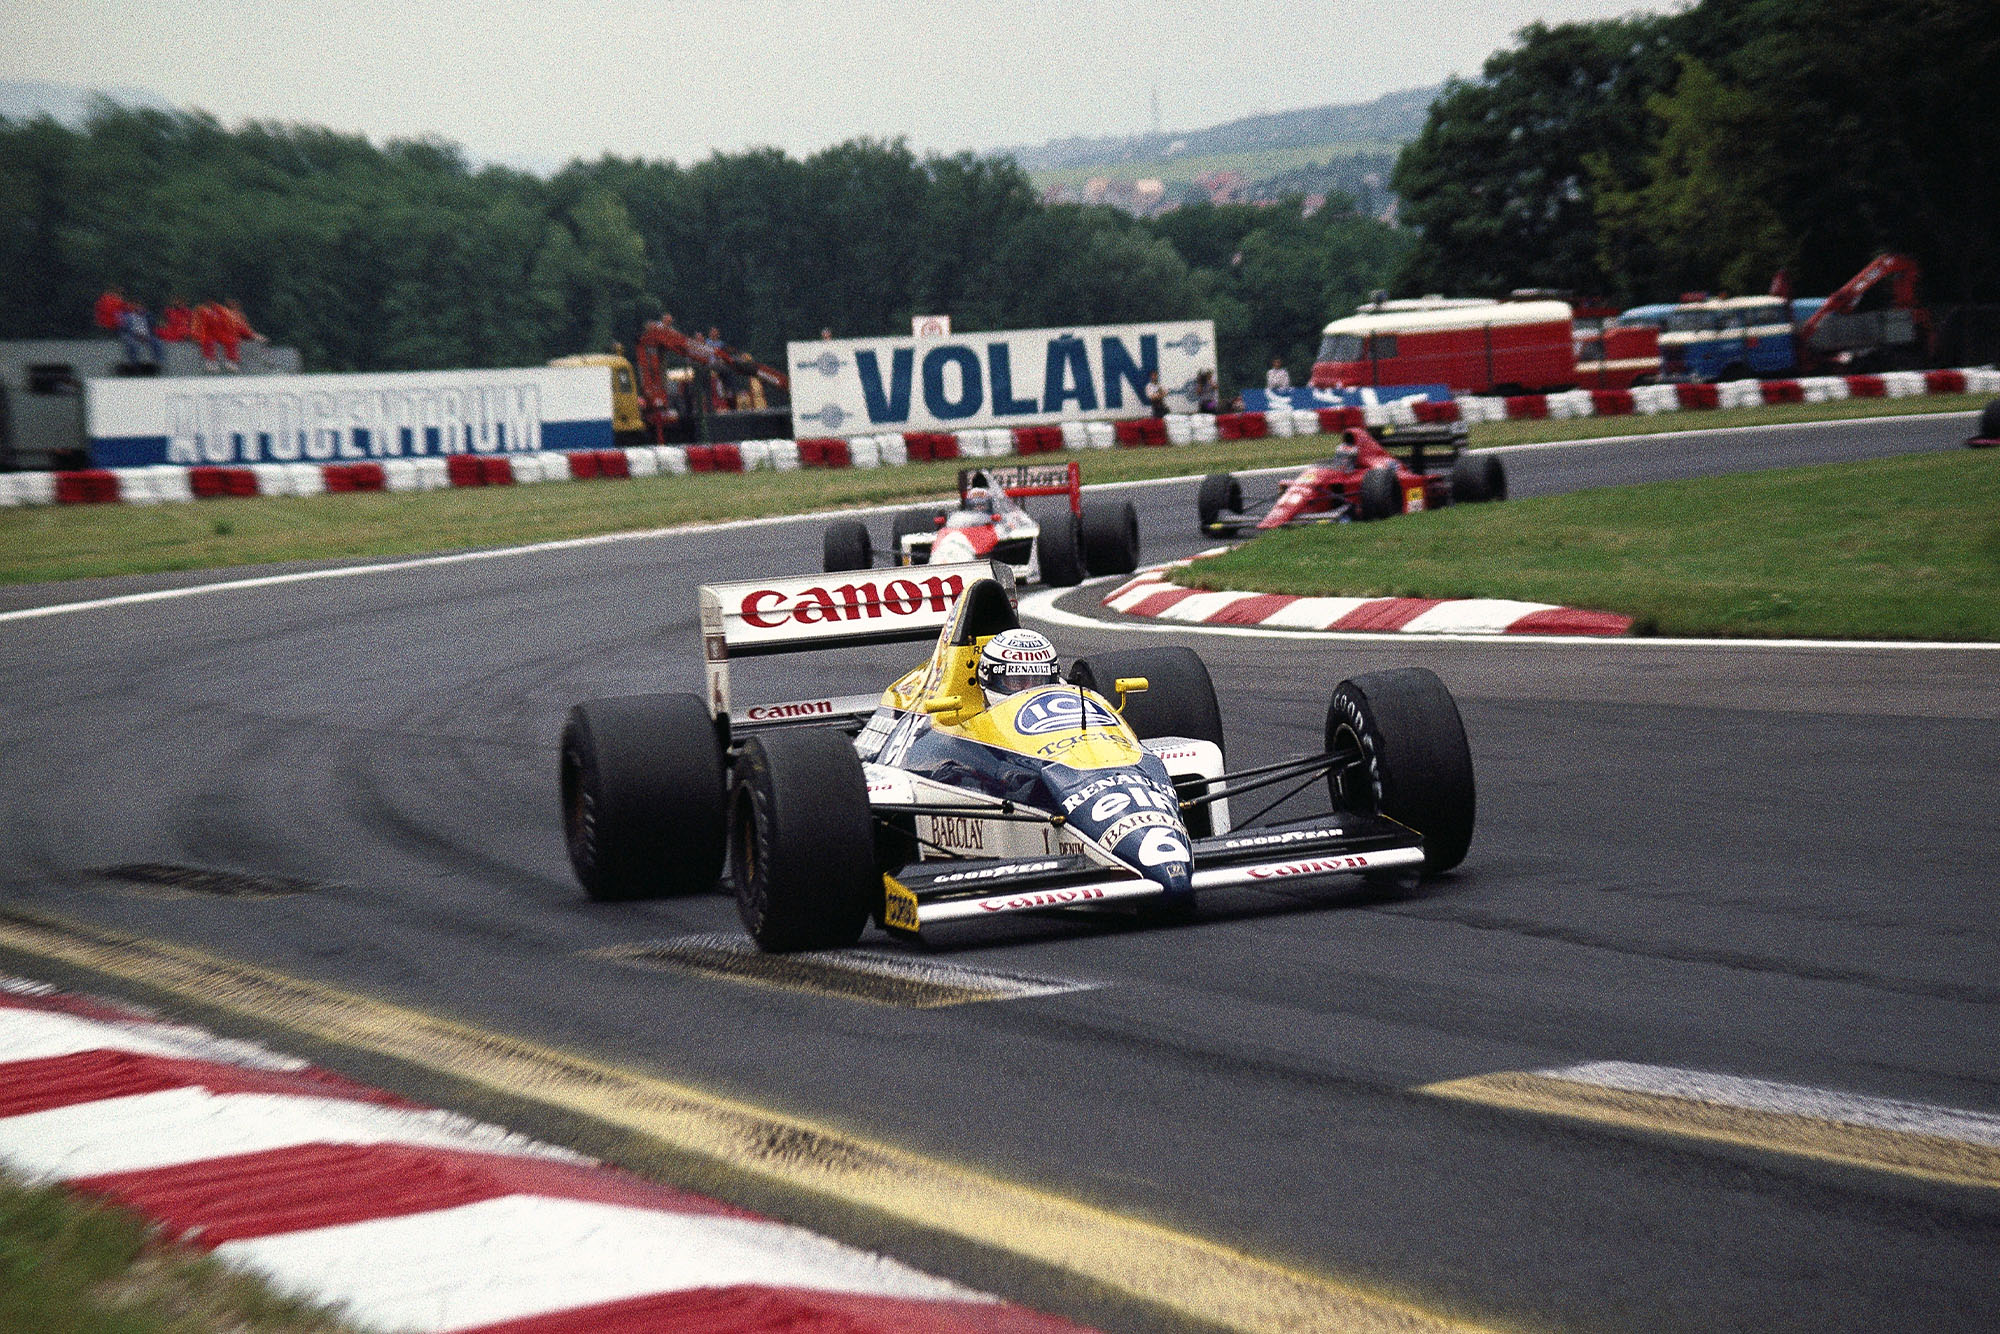 1989 HUN GP Patrese pole